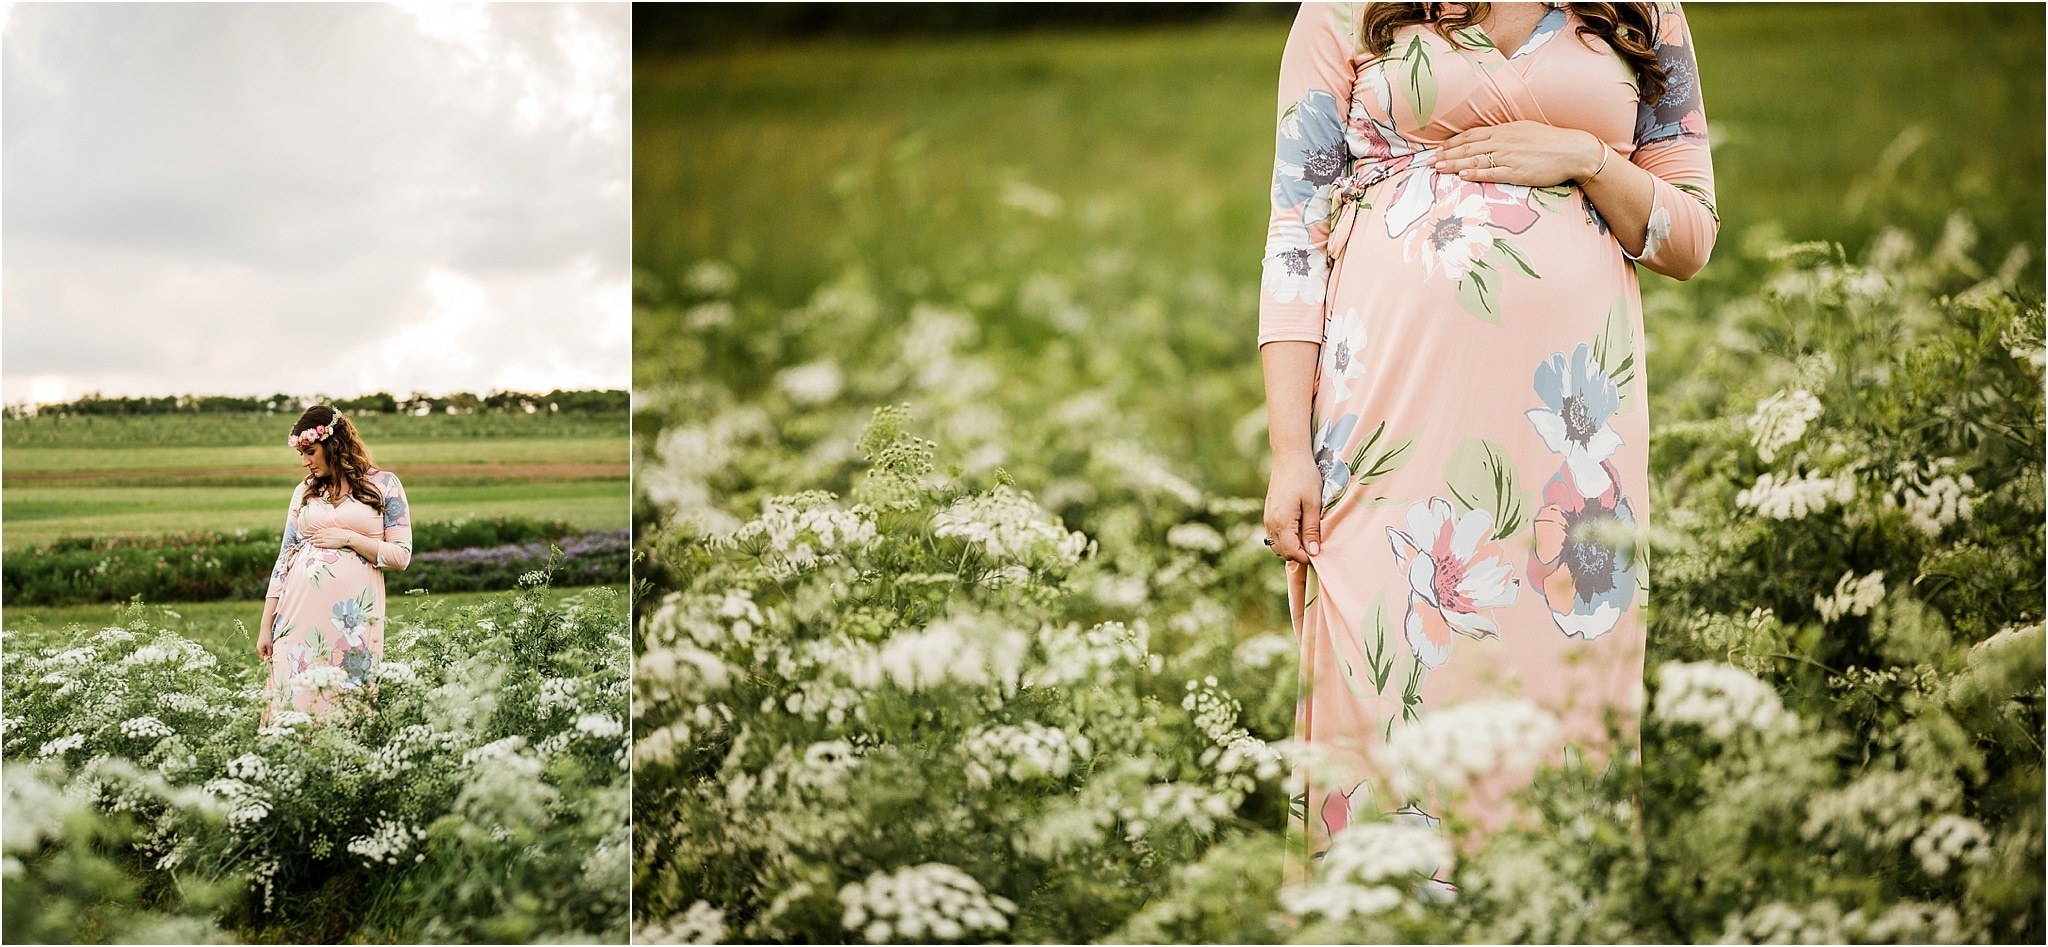 gorgeous pregnant woman in field of flowers